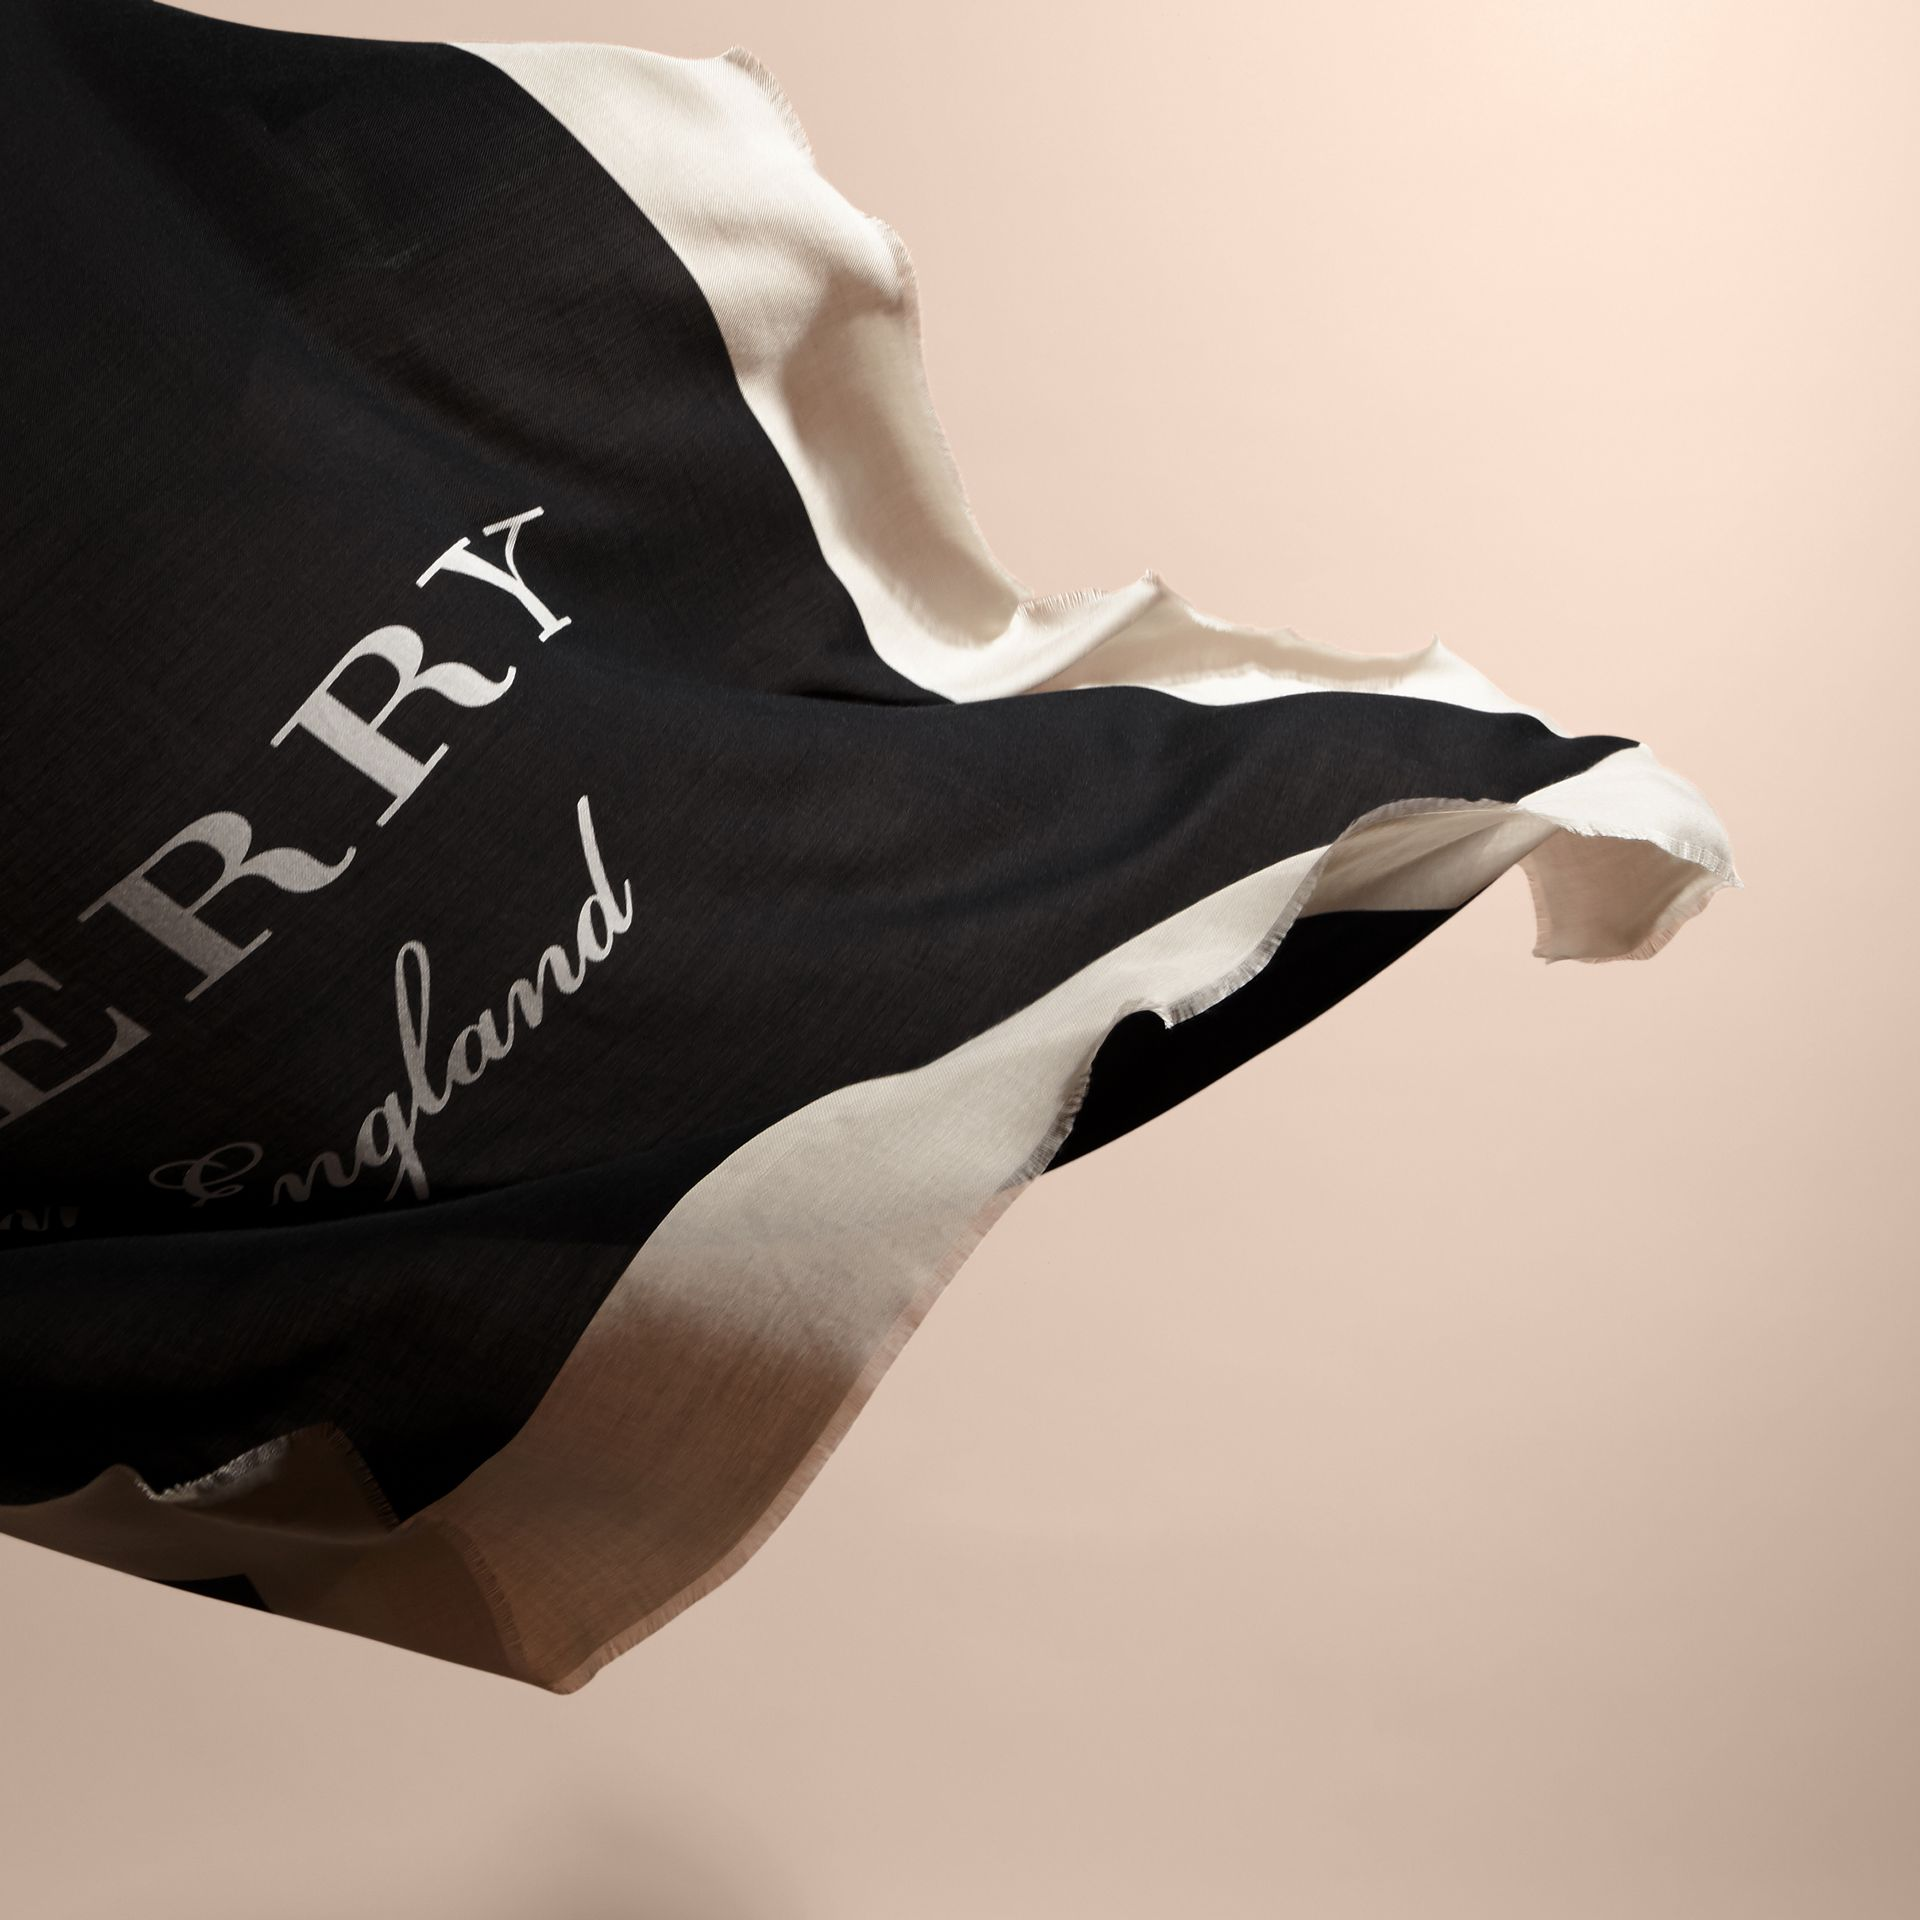 Burberry Print Cashmere Blend Scarf Black/stone - gallery image 5